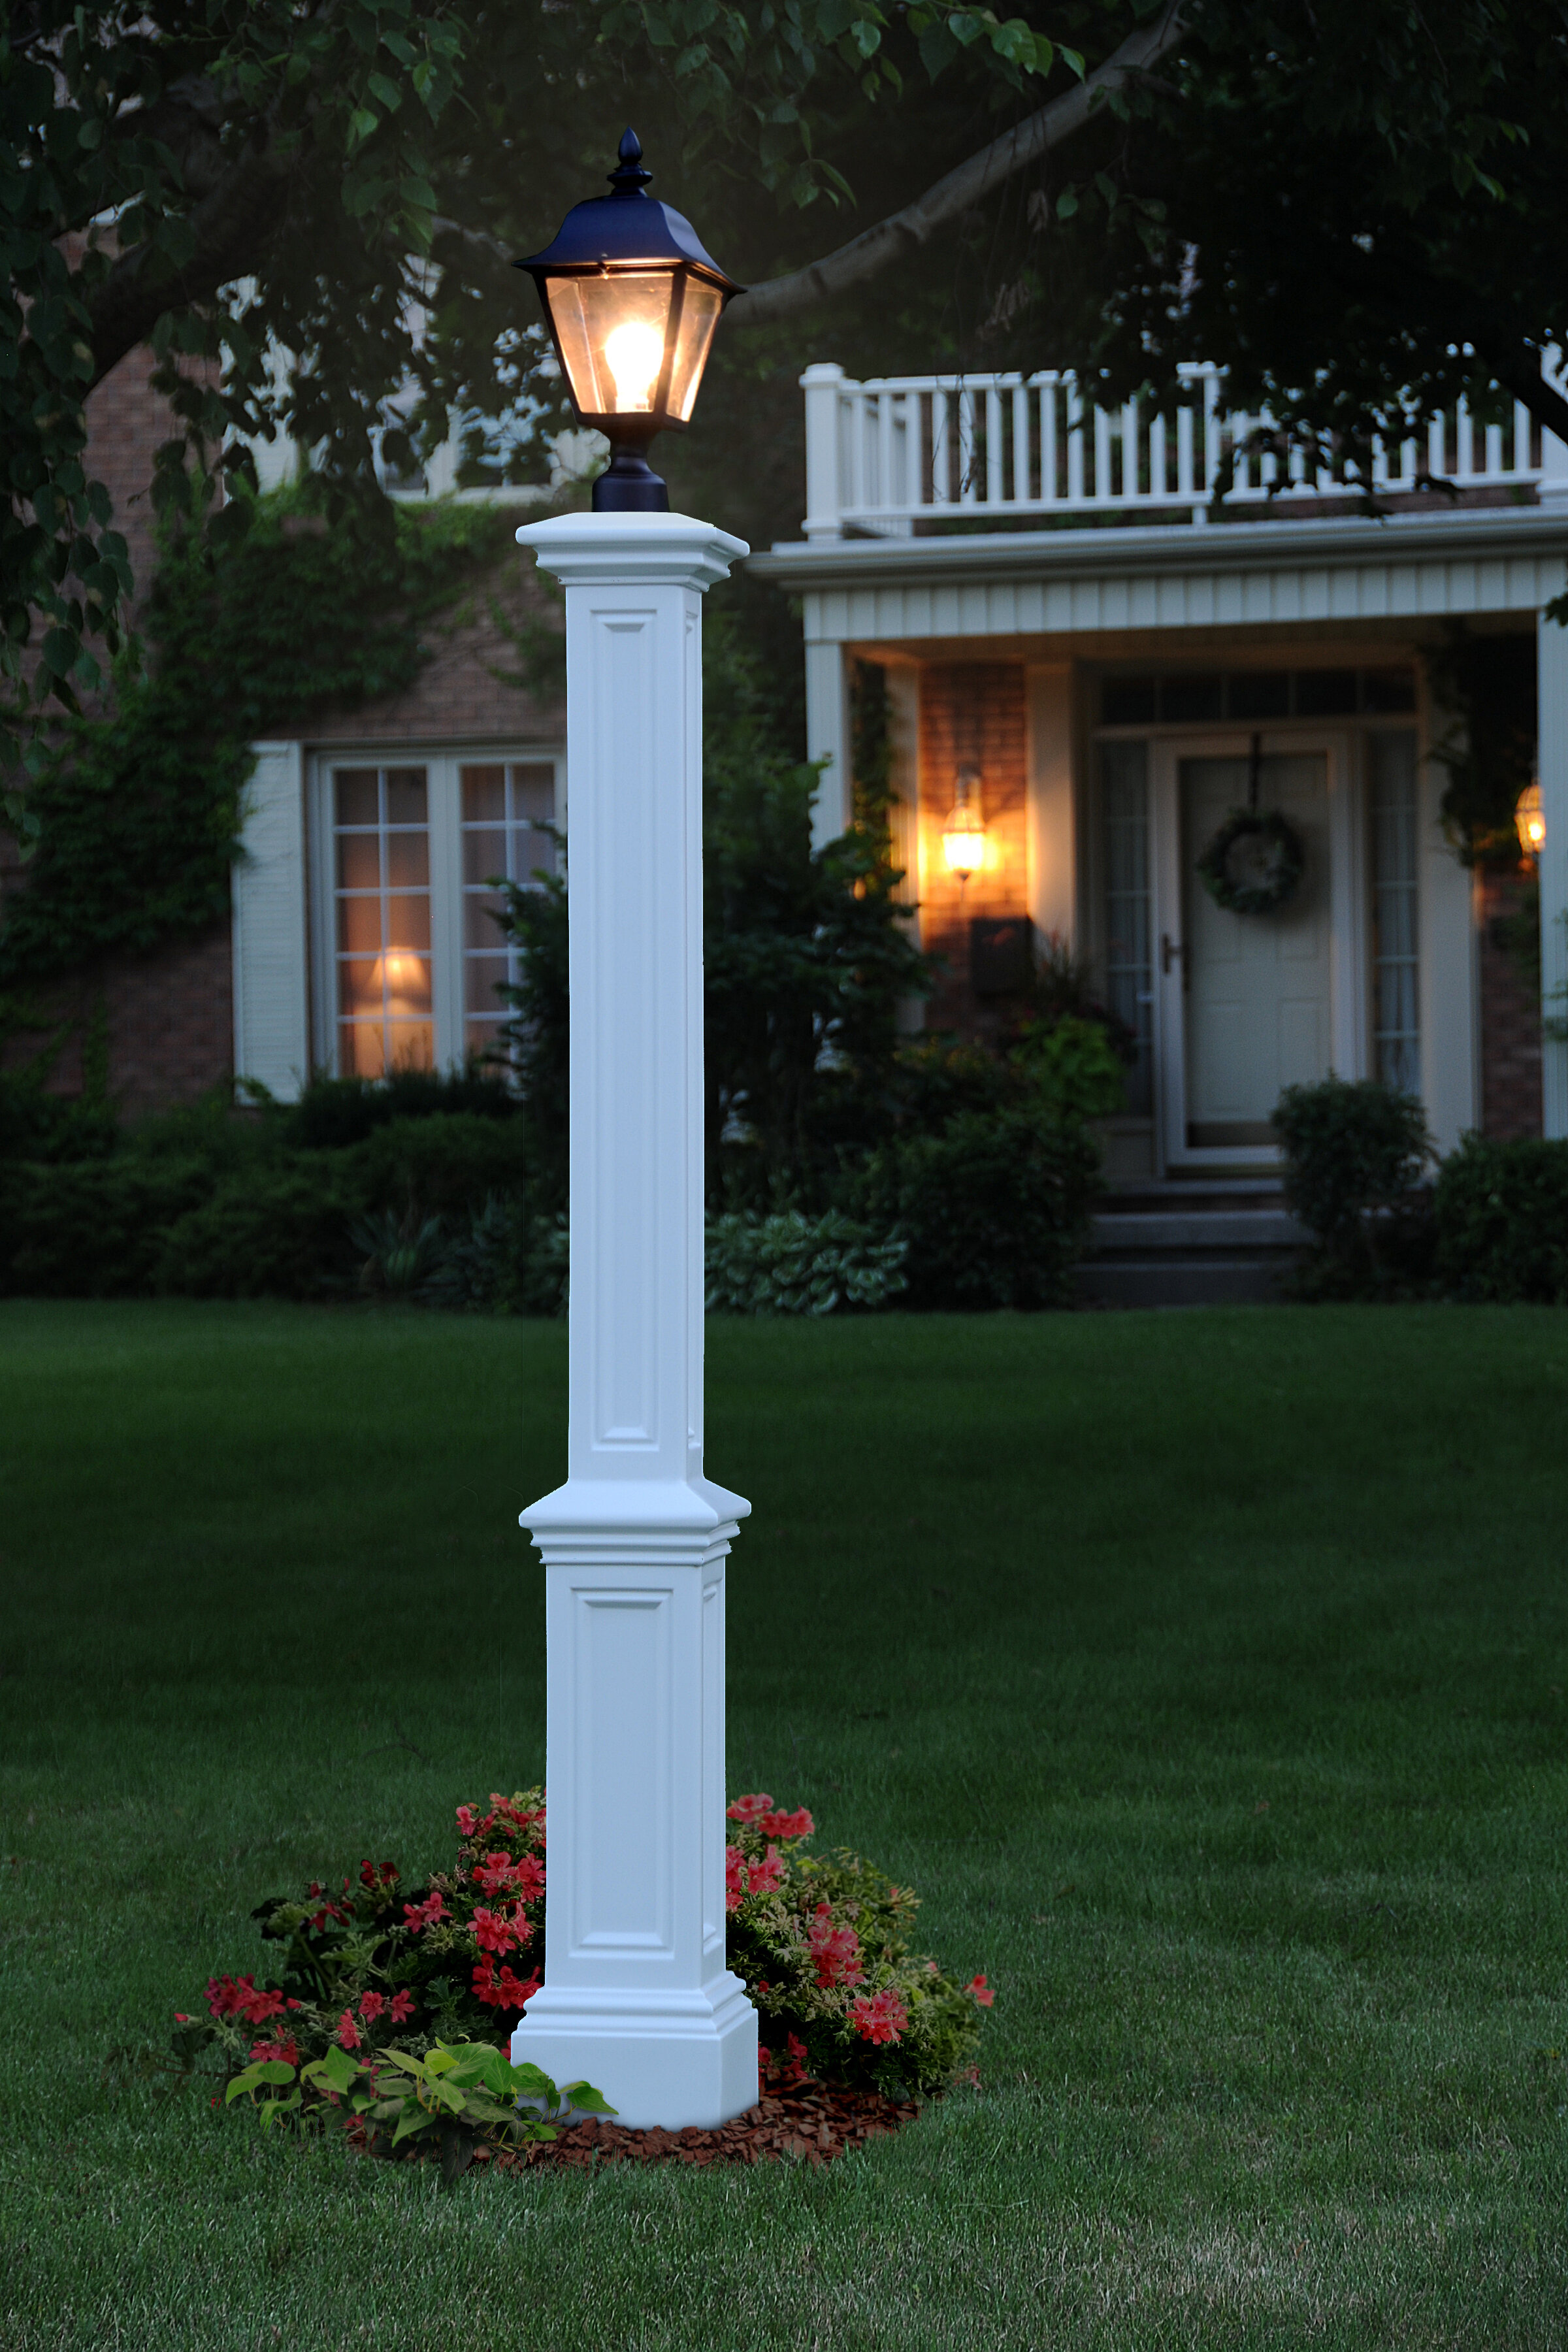 lighting on delightful and lamp aniston front ideas post yard sidewalk jennifer with light gardening curved designs